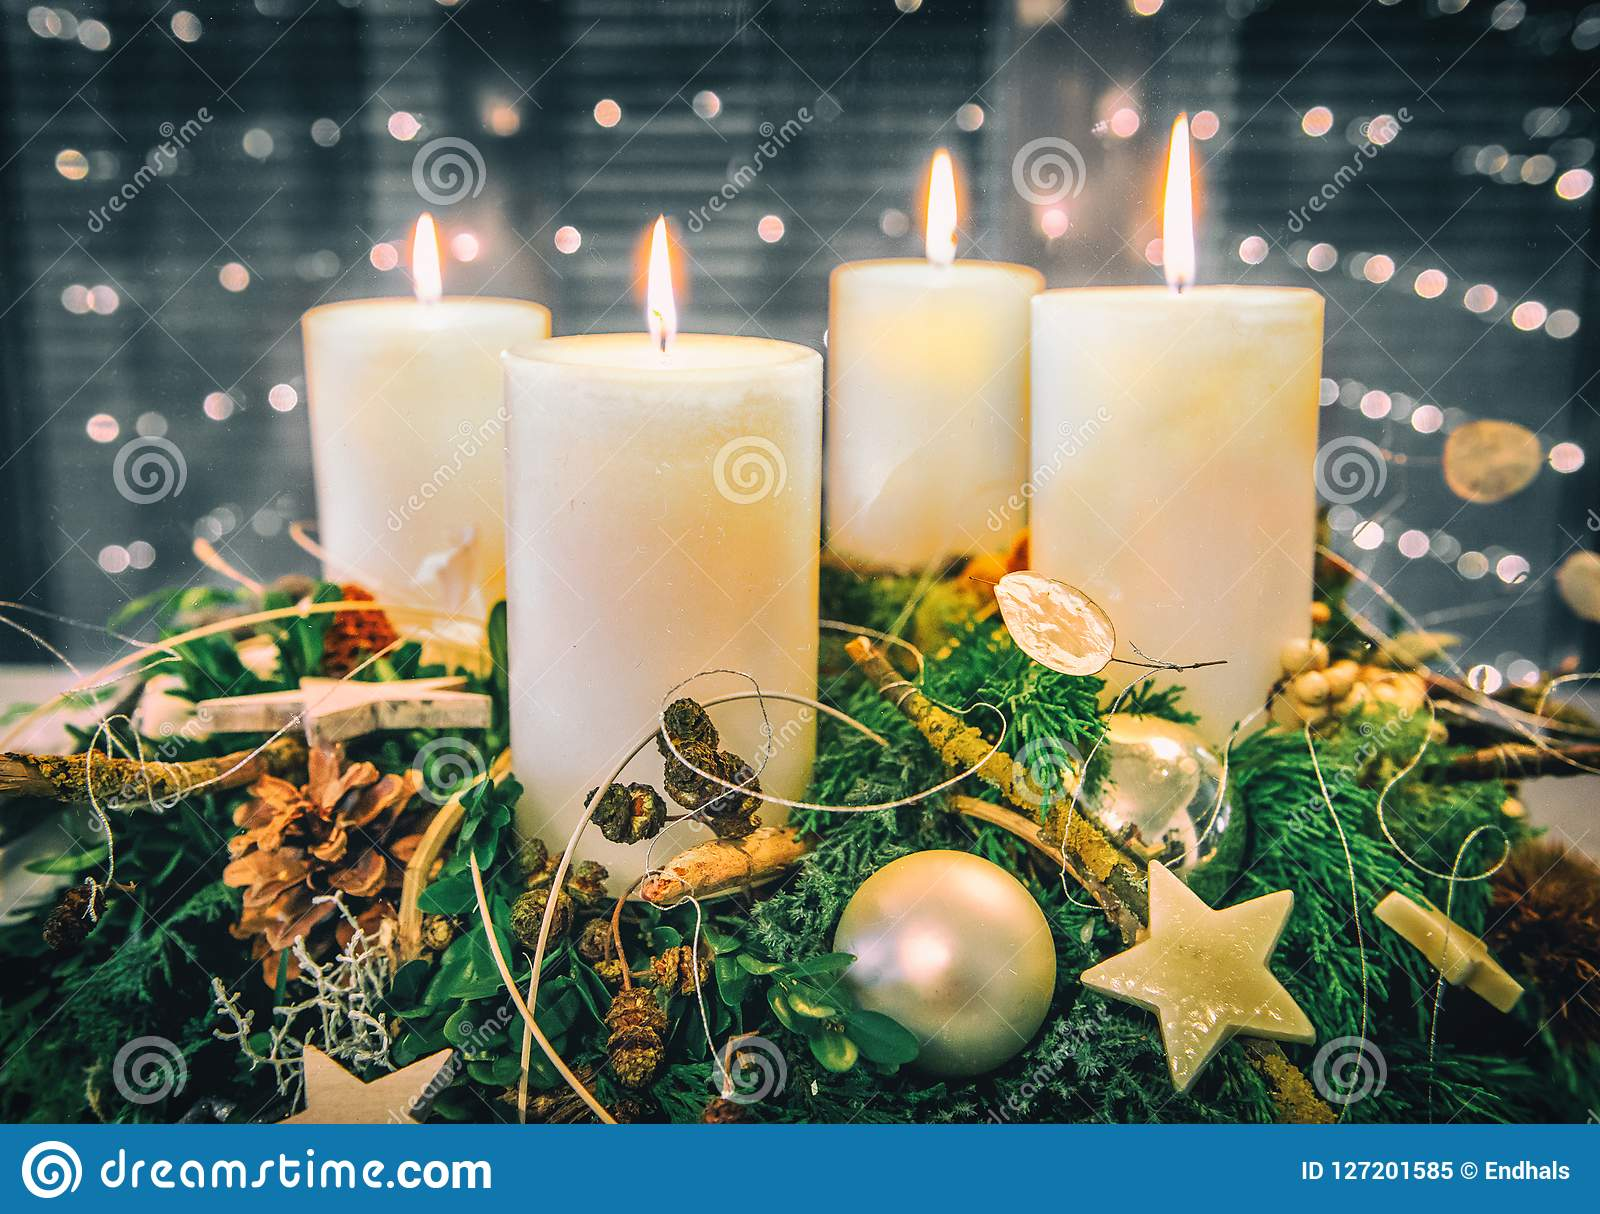 Festive Advent Wreath with burning candles